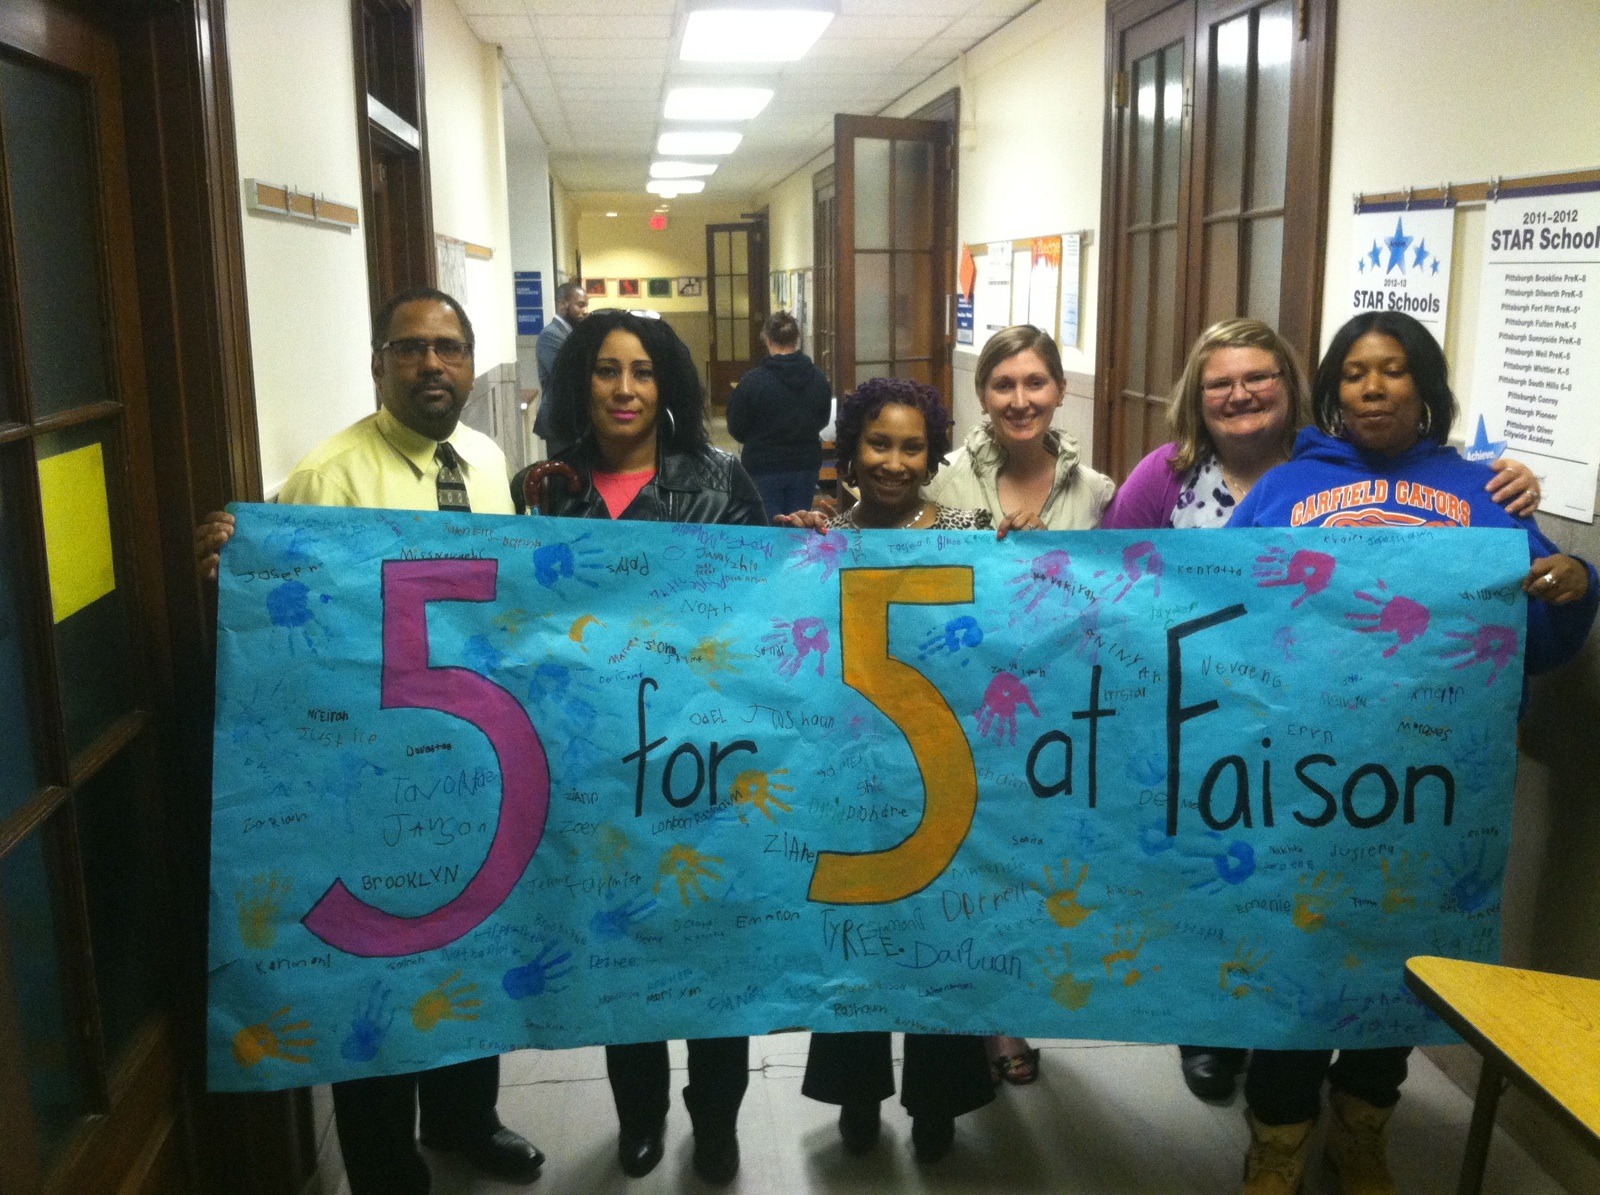 Parents from Pittsburgh Faison advocate for 5 teachers for 5 classes of Kindergarten and First Grade at the Board last night.